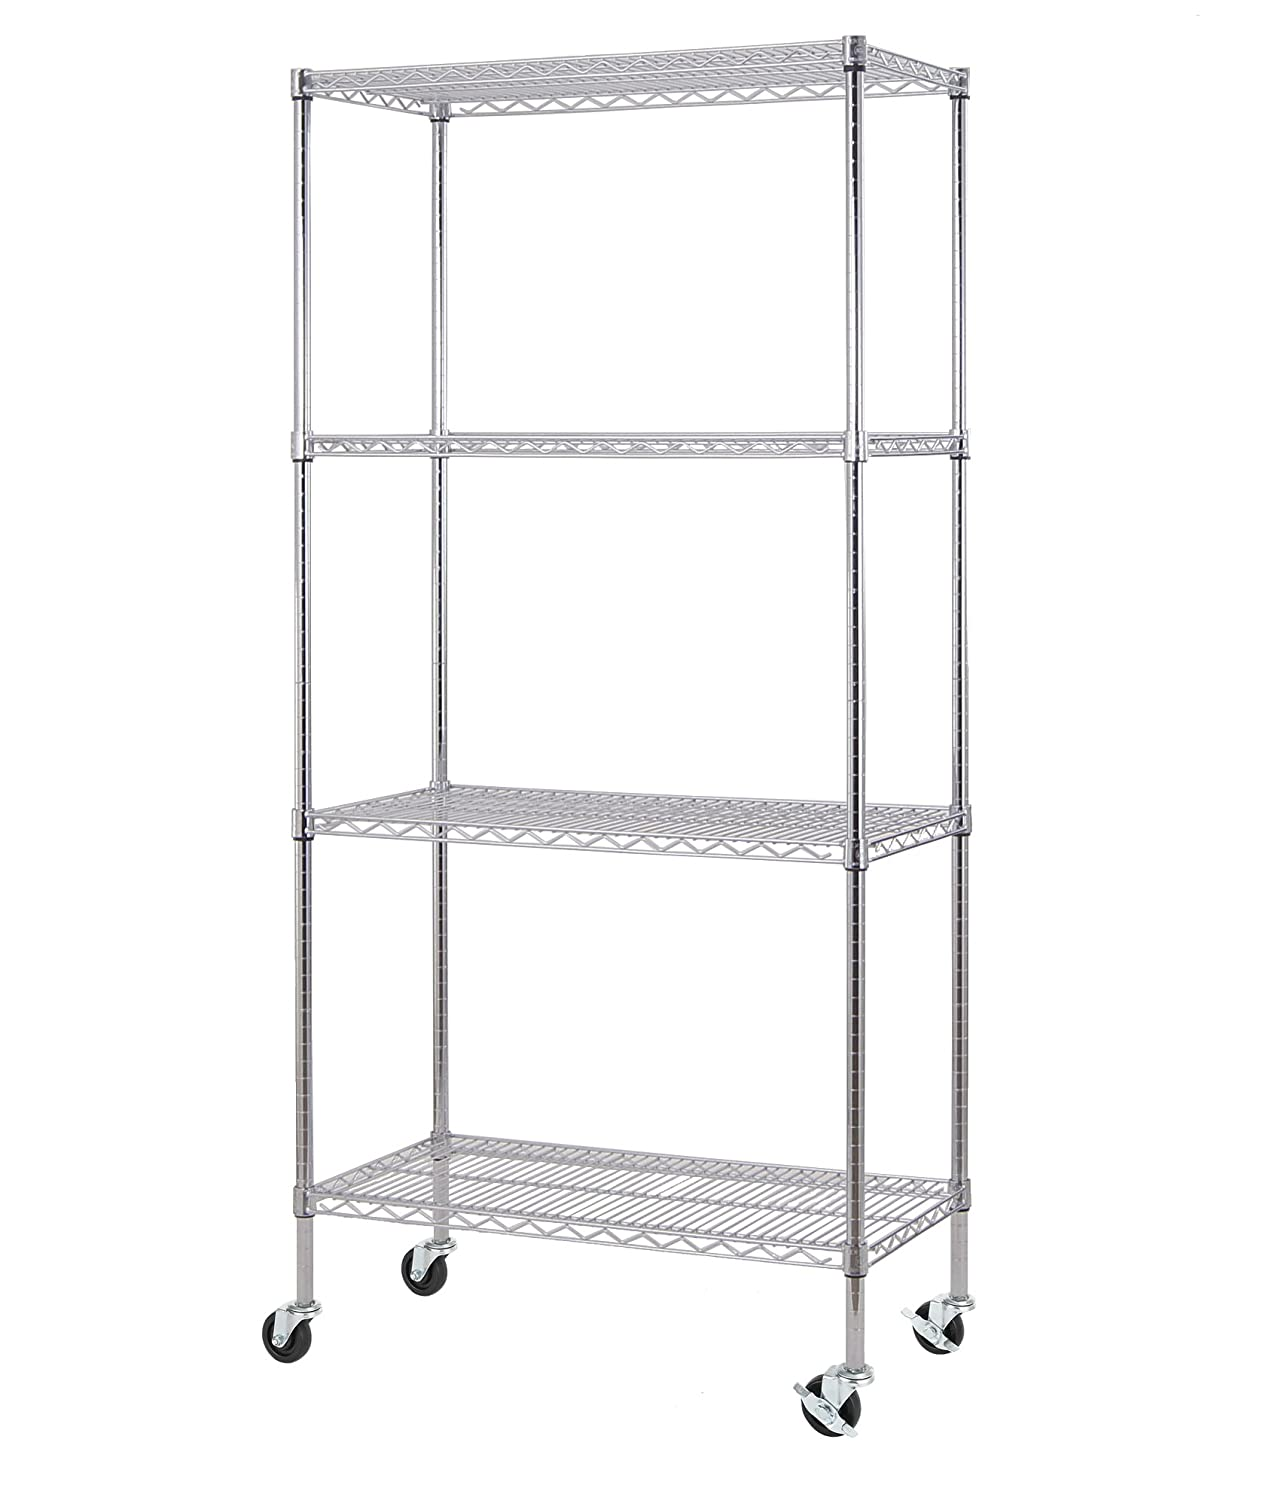 Excel NSF Multi-Purpose 4-Tier Wire Shelving Unit with Casters, 36 in. x 18 in. x 77 in., Chrome